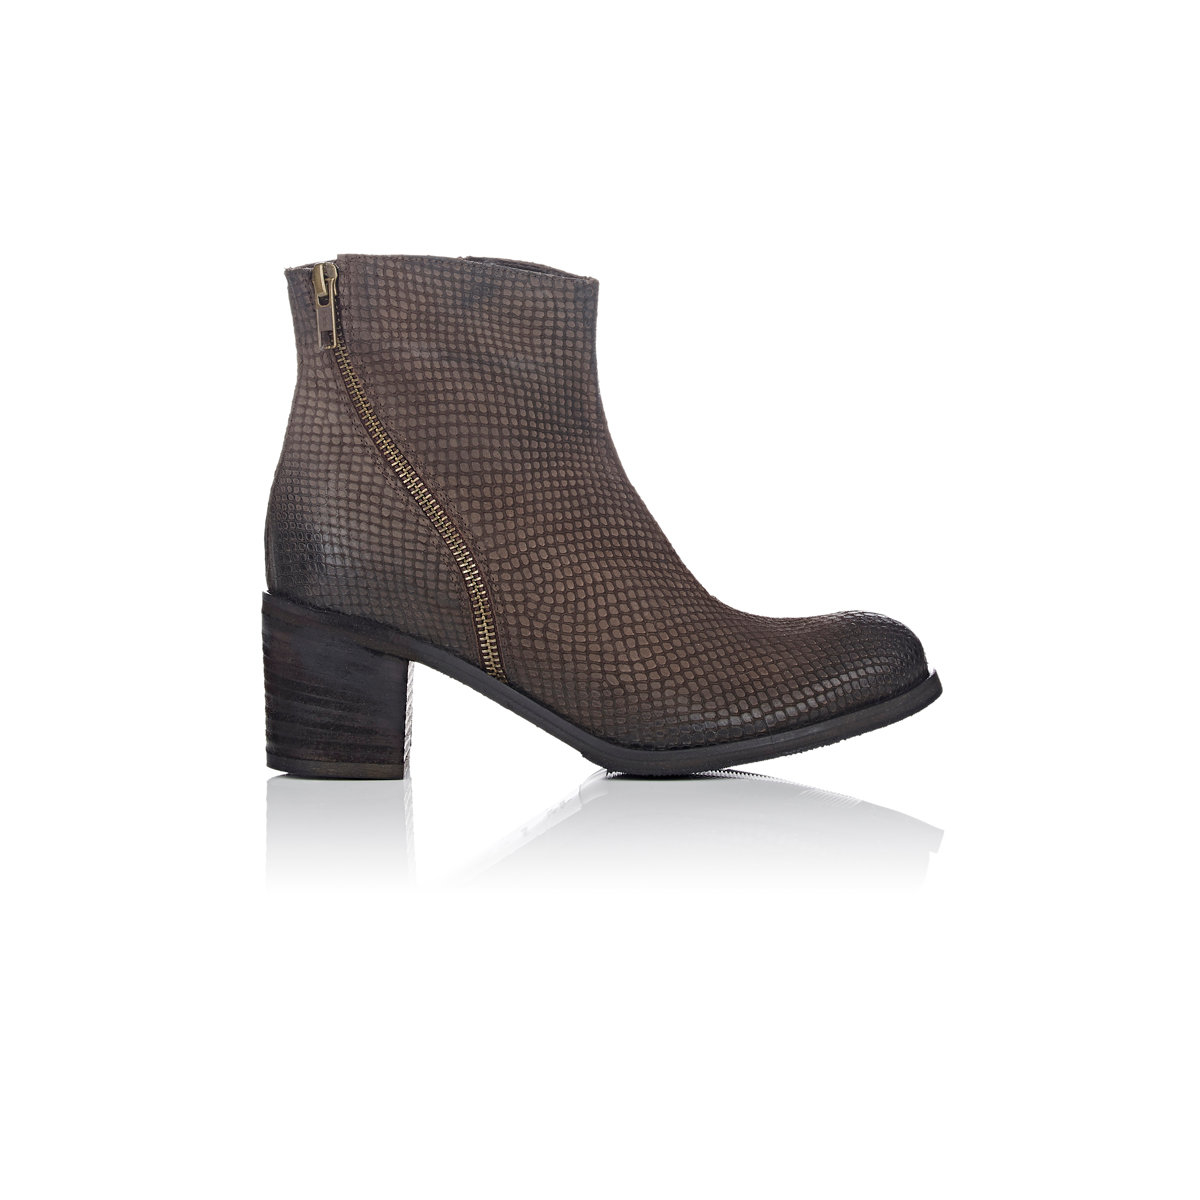 barneys new york asymmetric zip ankle boots in brown lyst